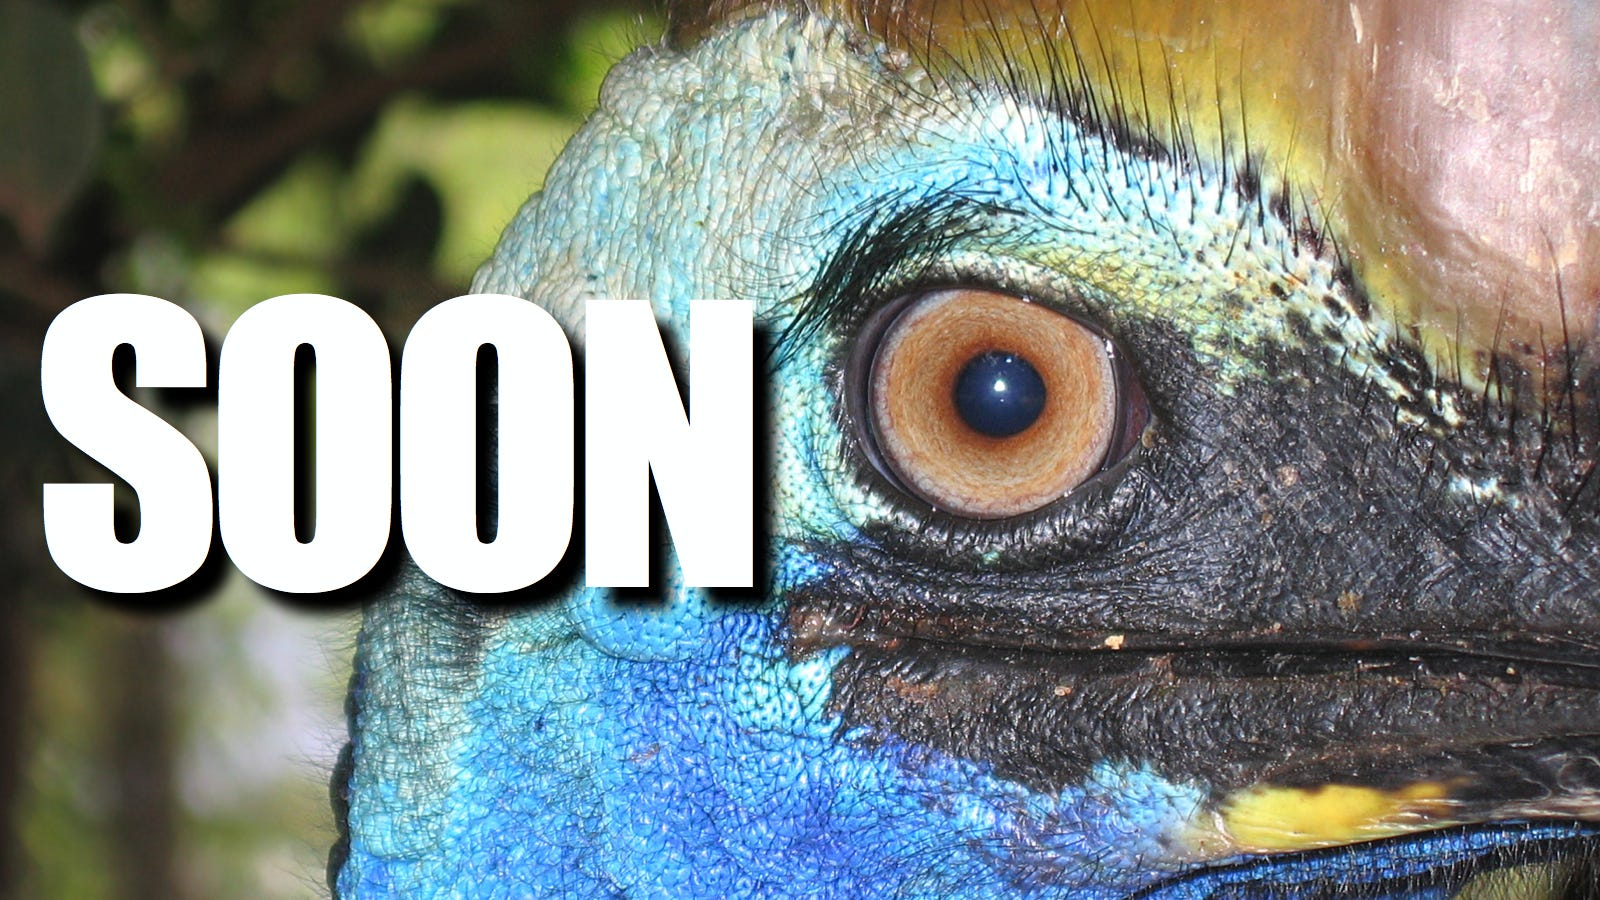 The absolute worst way to die in the wild is Death-by-Cassowary